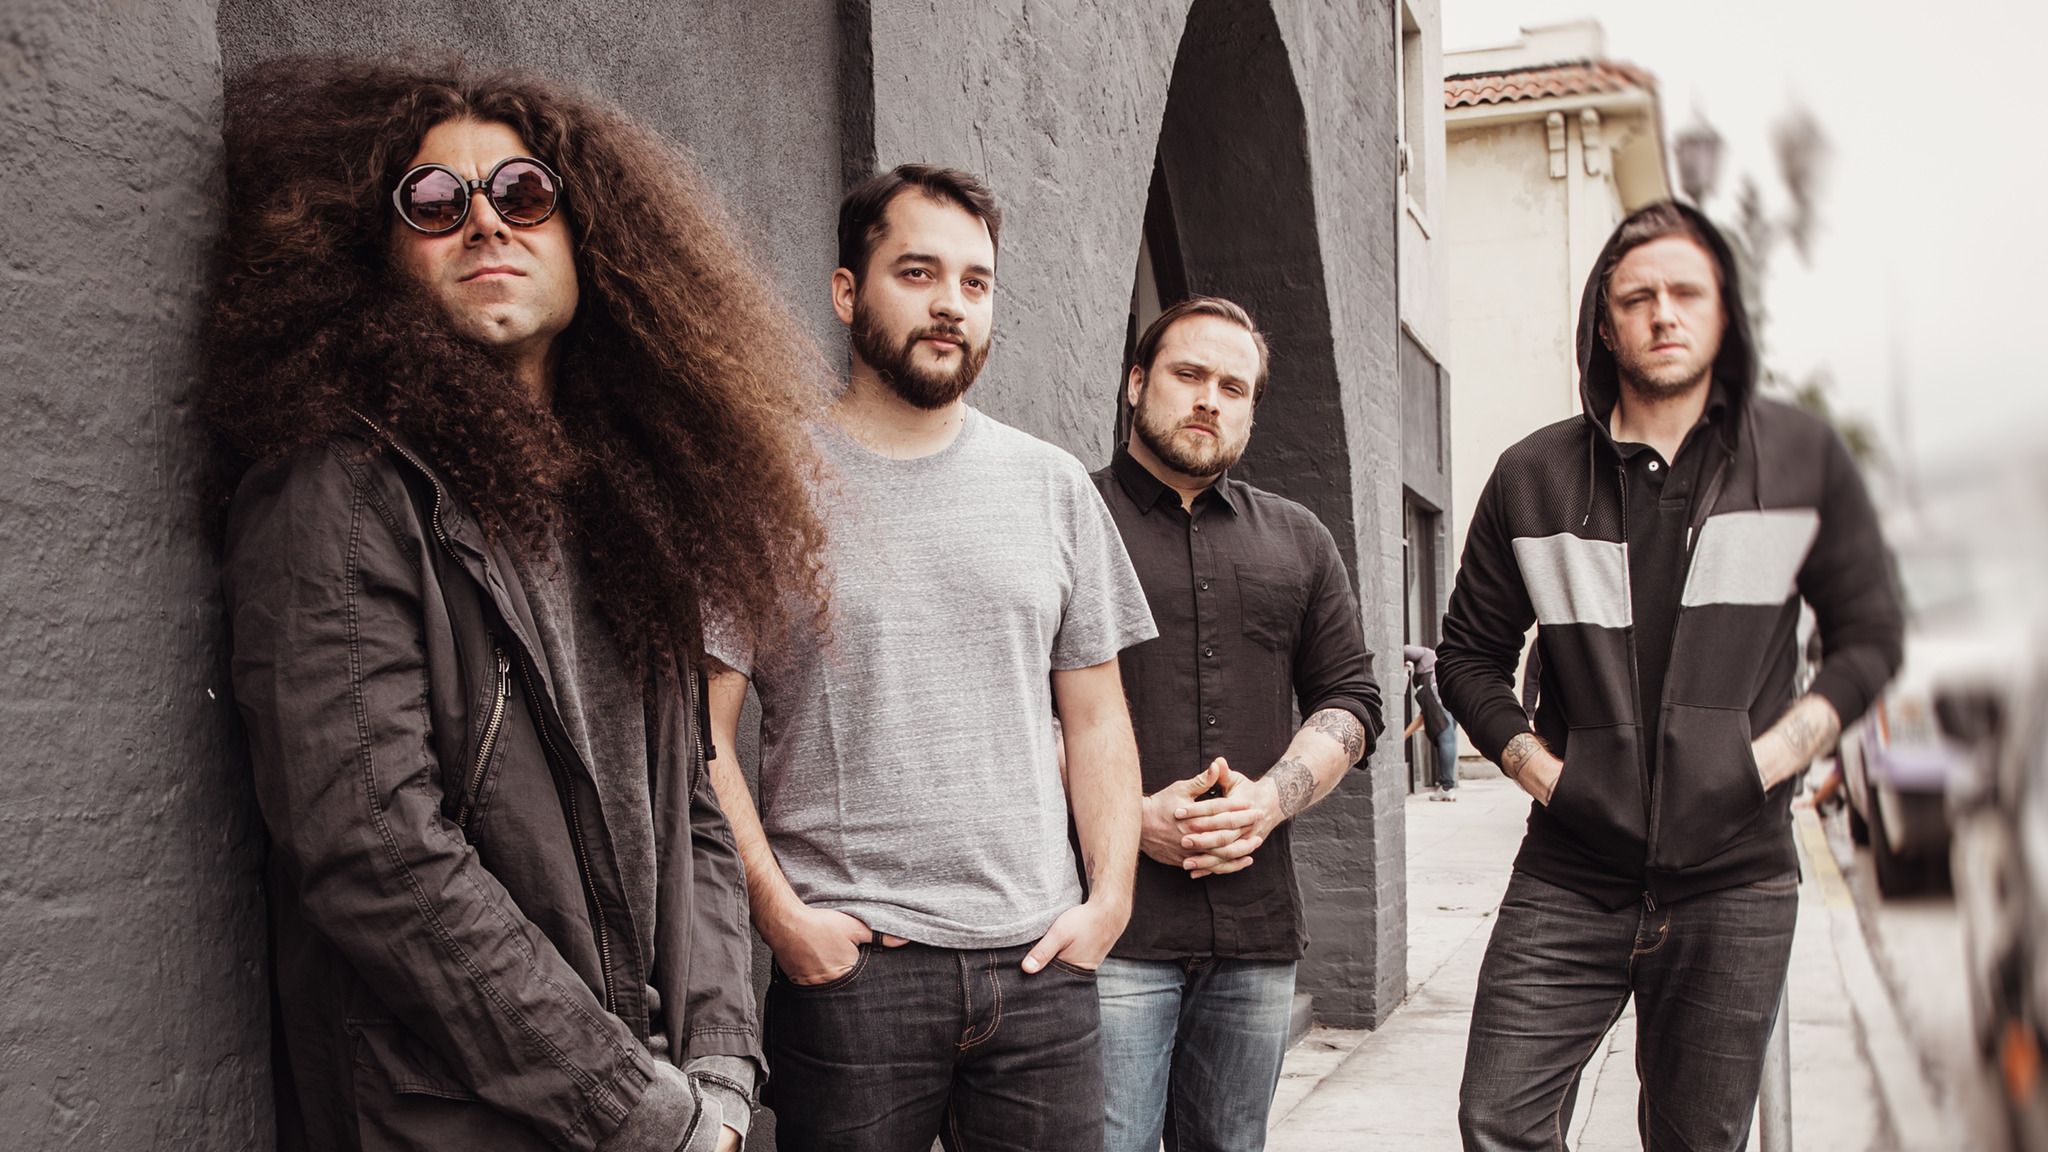 coheed and cambria at house of blues central track. Black Bedroom Furniture Sets. Home Design Ideas